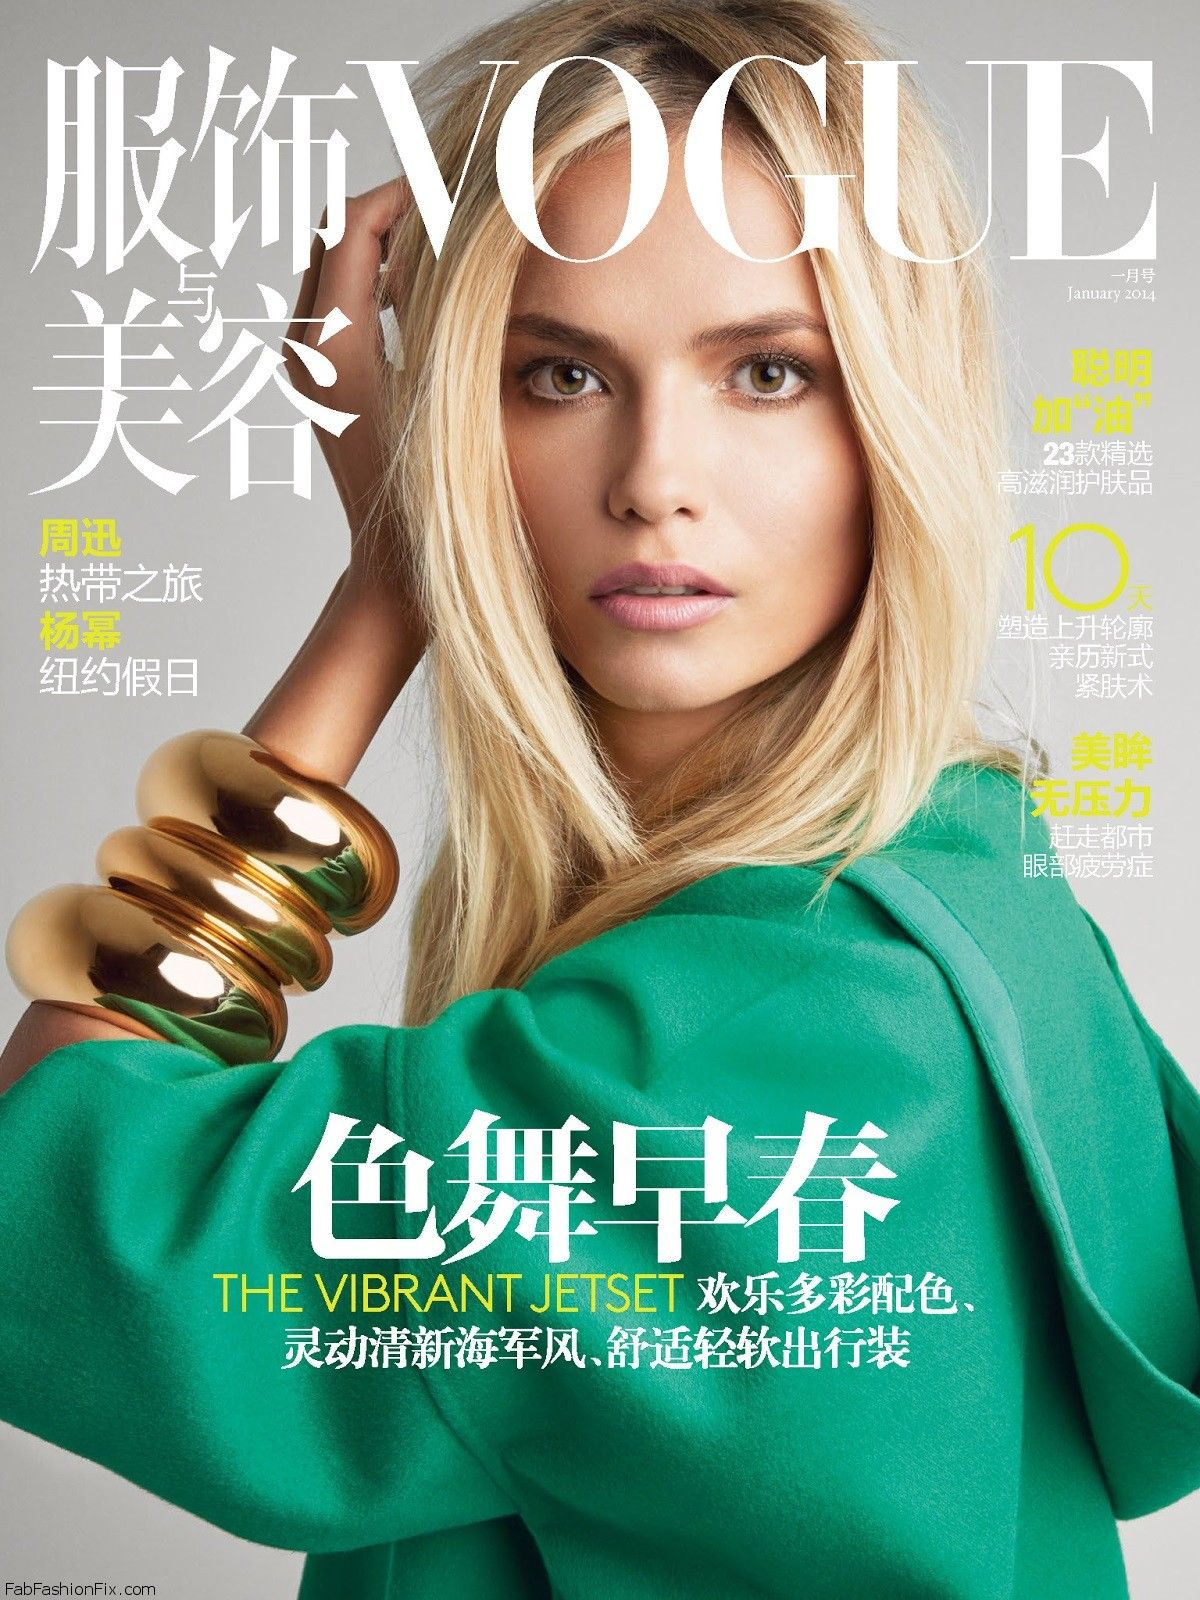 Natasha Poly by Patrick Demarchelier for Vogue China January 2014 (Colour Me Happy) (0)-cover